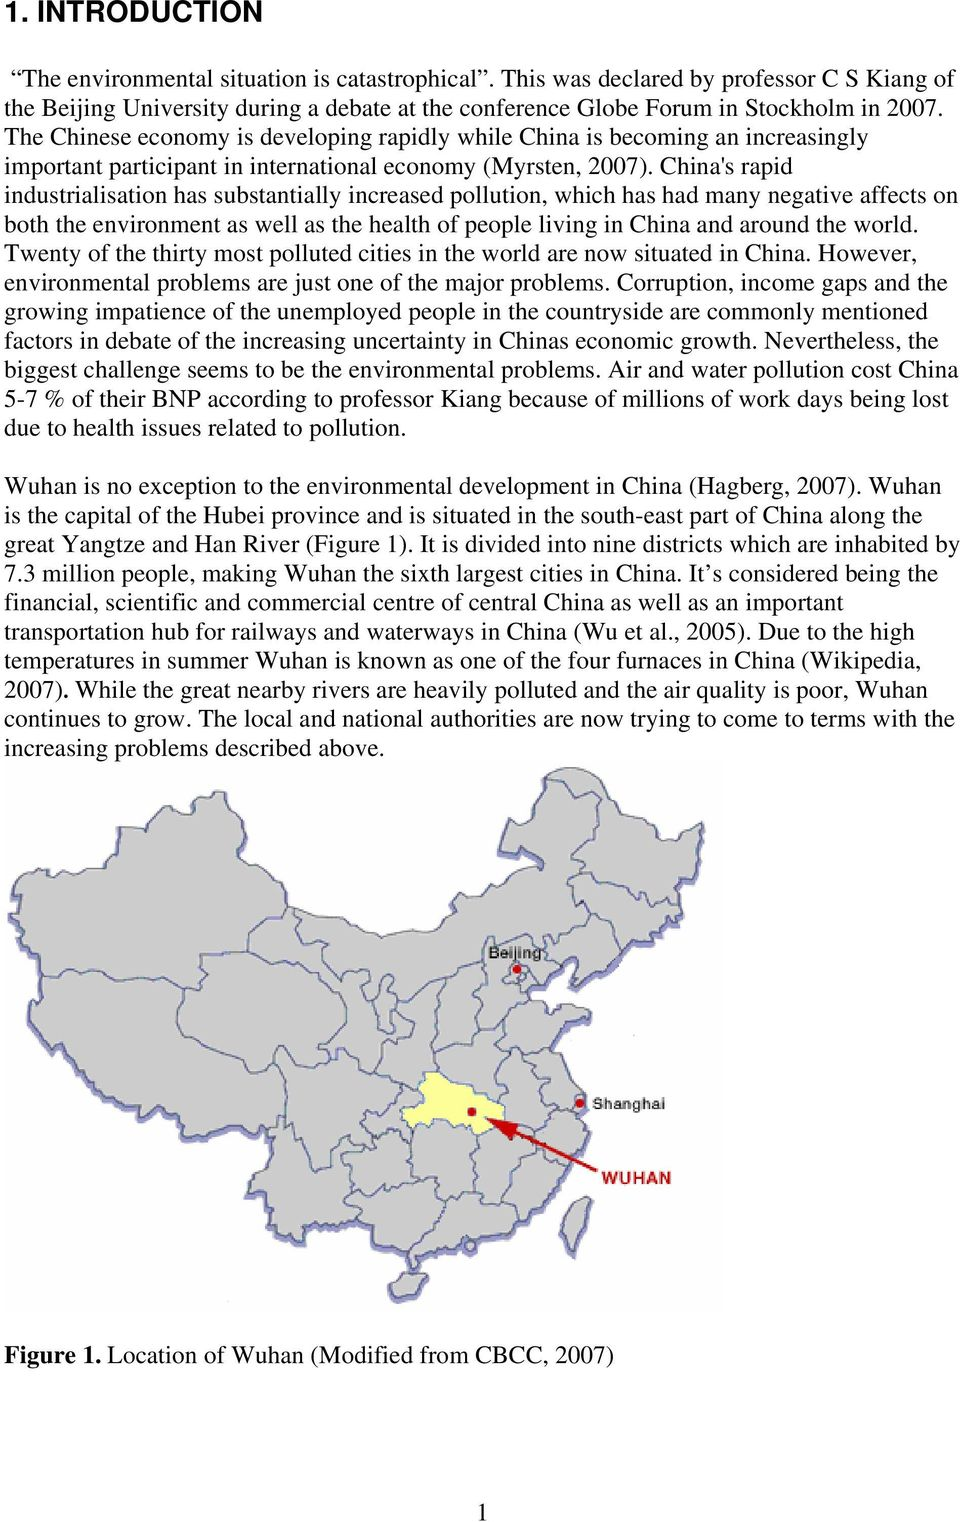 China's rapid industrialisation has substantially increased pollution, which has had many negative affects on both the environment as well as the health of people living in China and around the world.